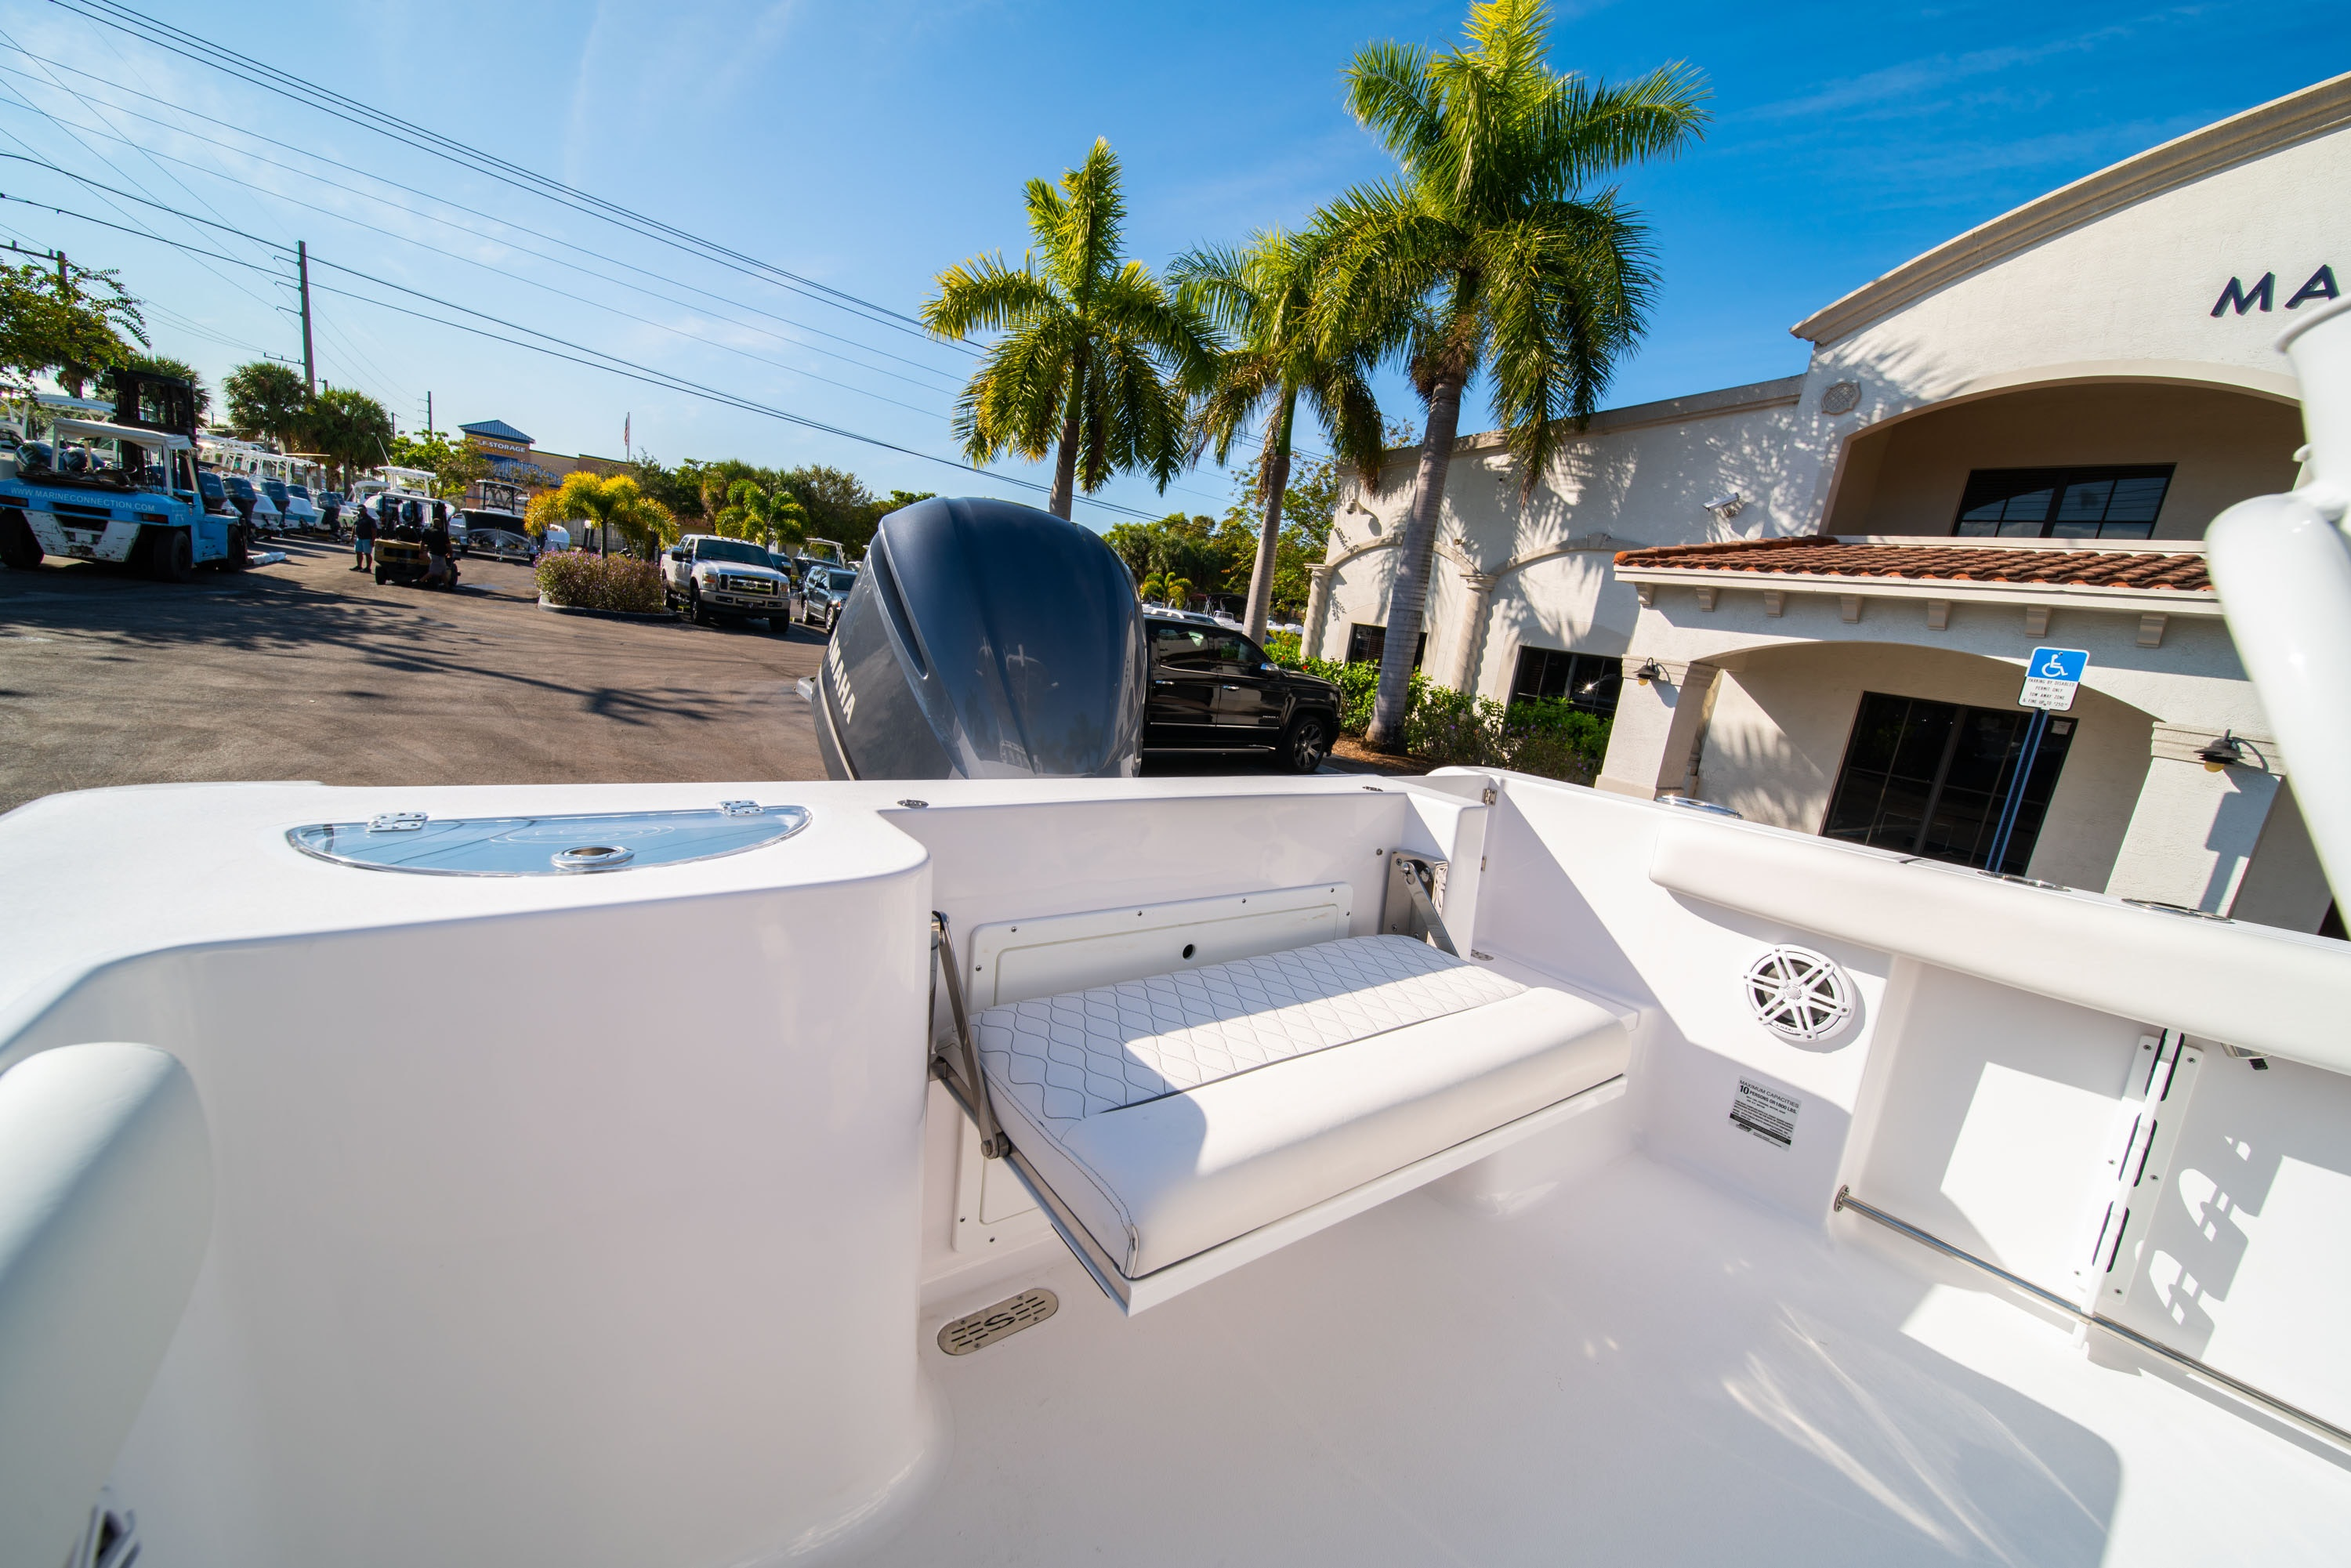 Thumbnail 10 for New 2020 Sportsman Open 232 Center Console boat for sale in West Palm Beach, FL